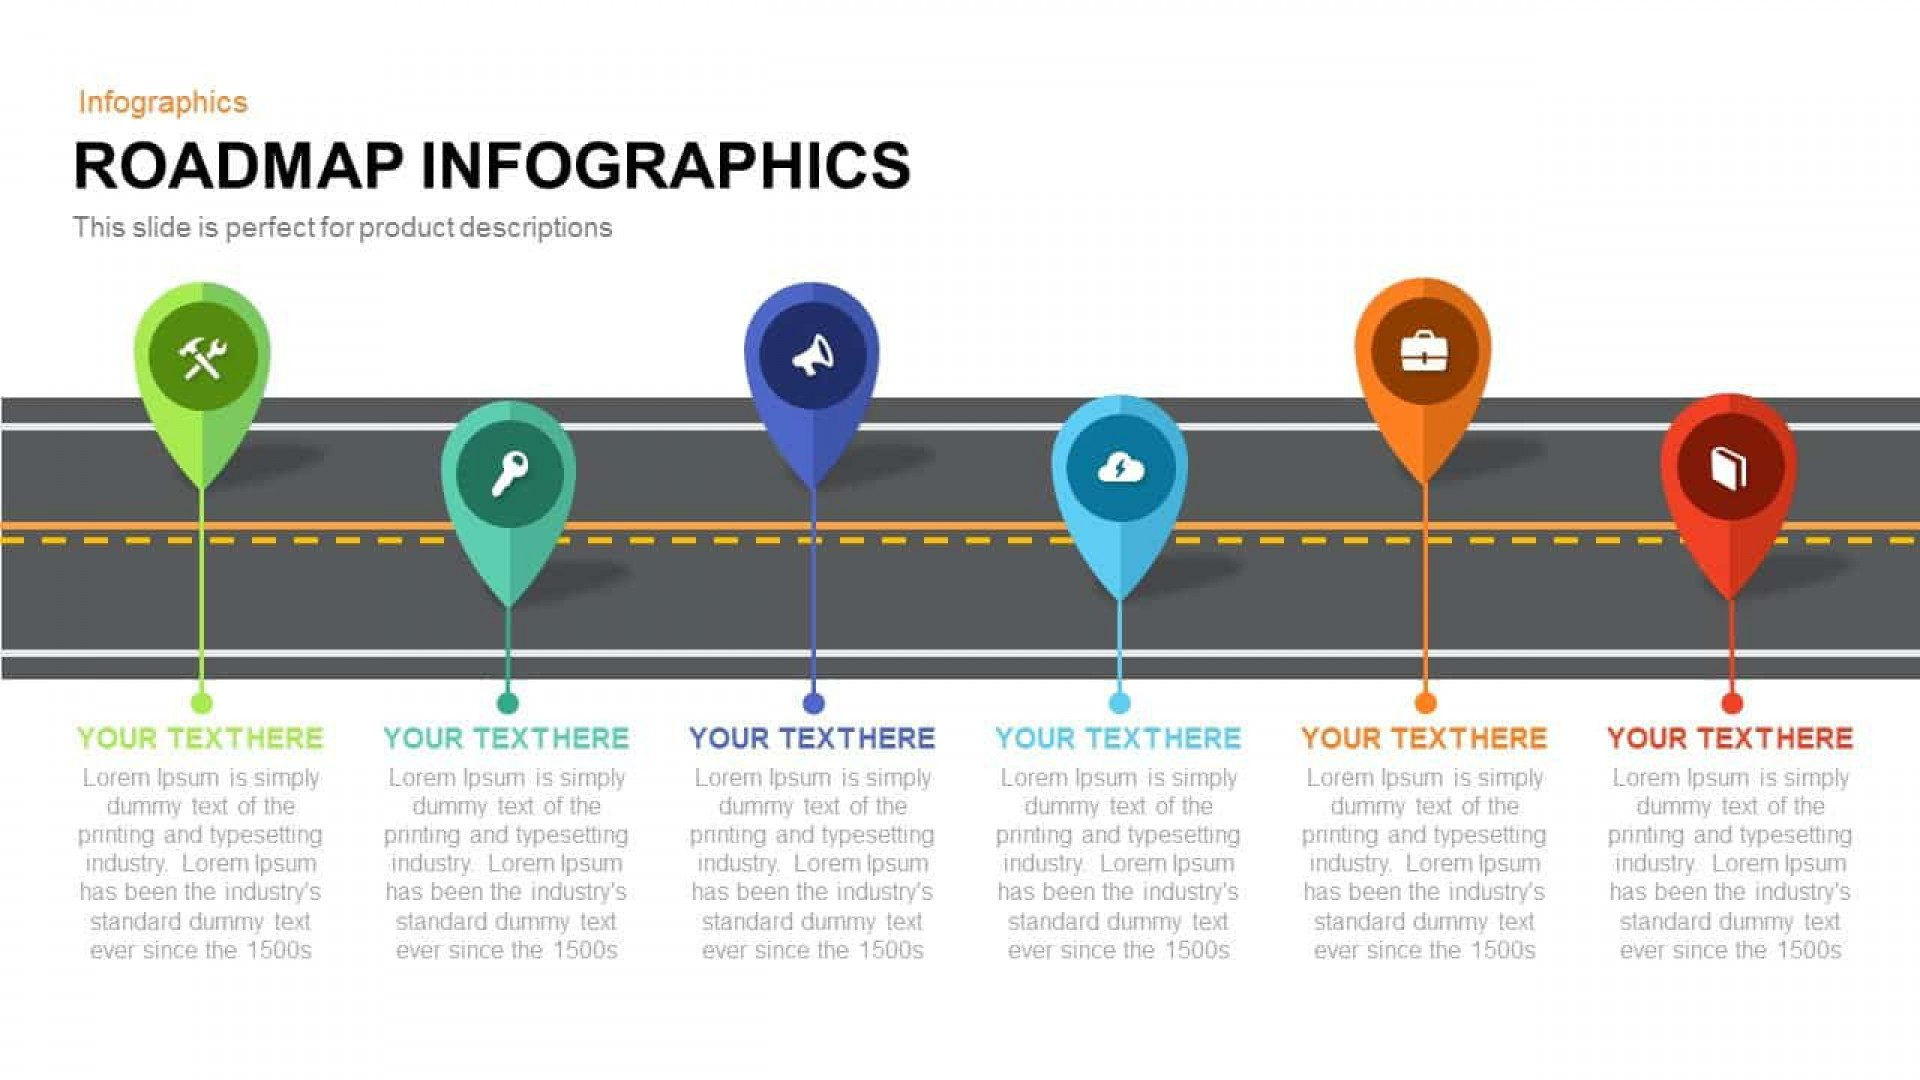 008 Impressive Road Map Template Powerpoint Picture  Roadmap Ppt Free Download Product1920